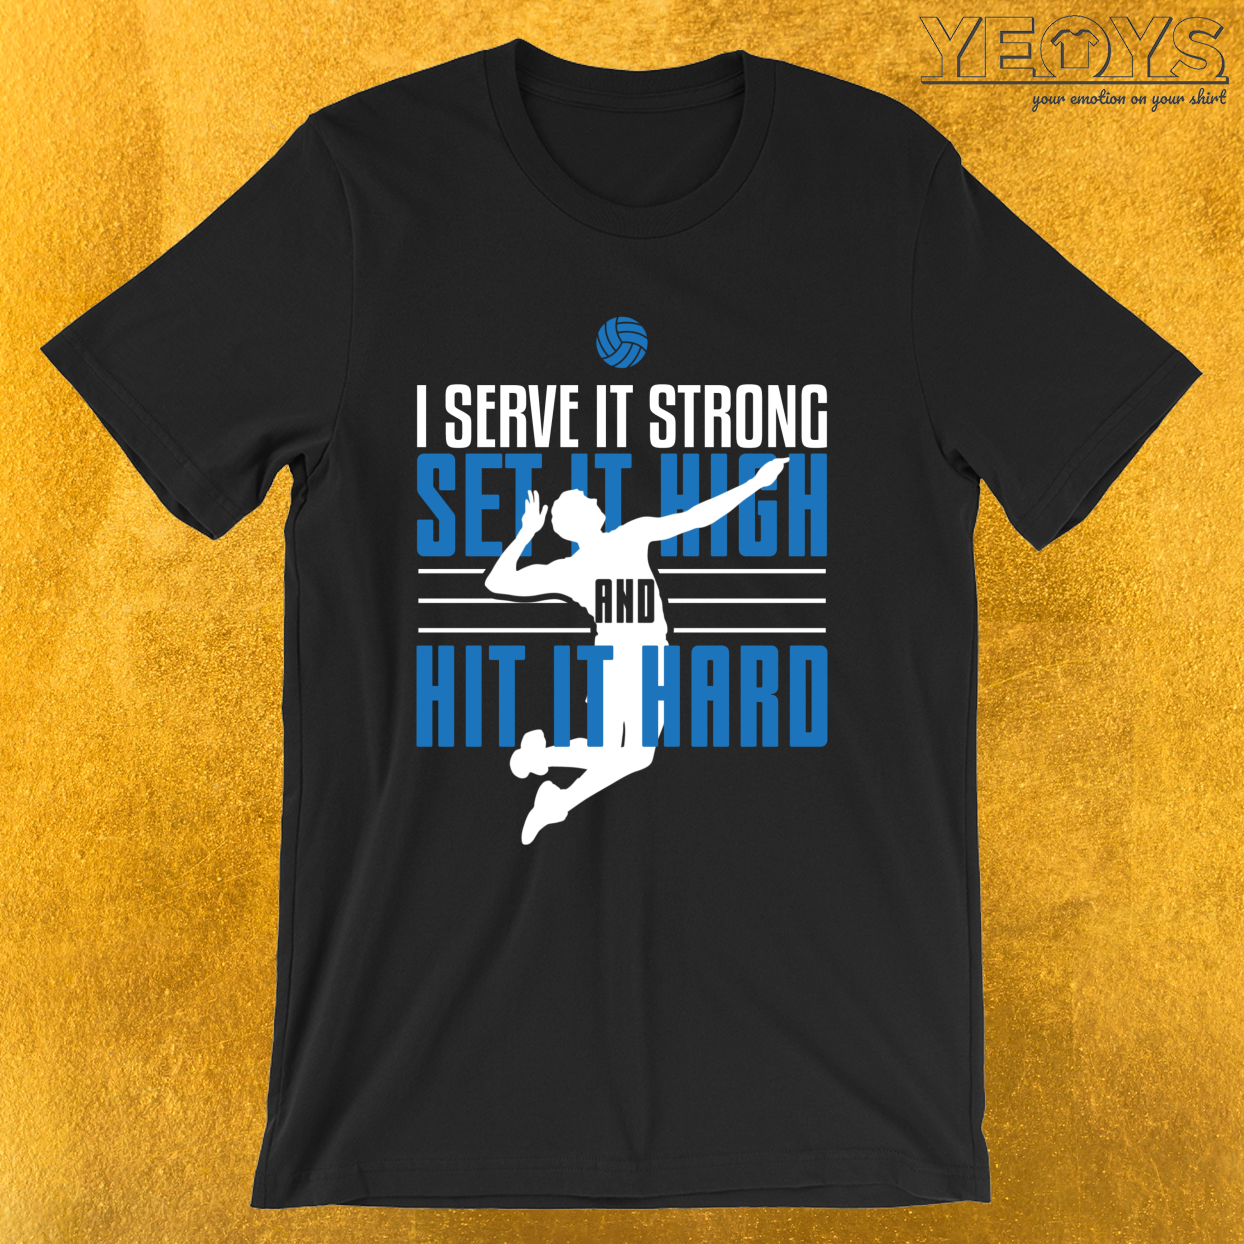 I Serve It Strong Set It High And Hit It Hard – Volleyball Tee